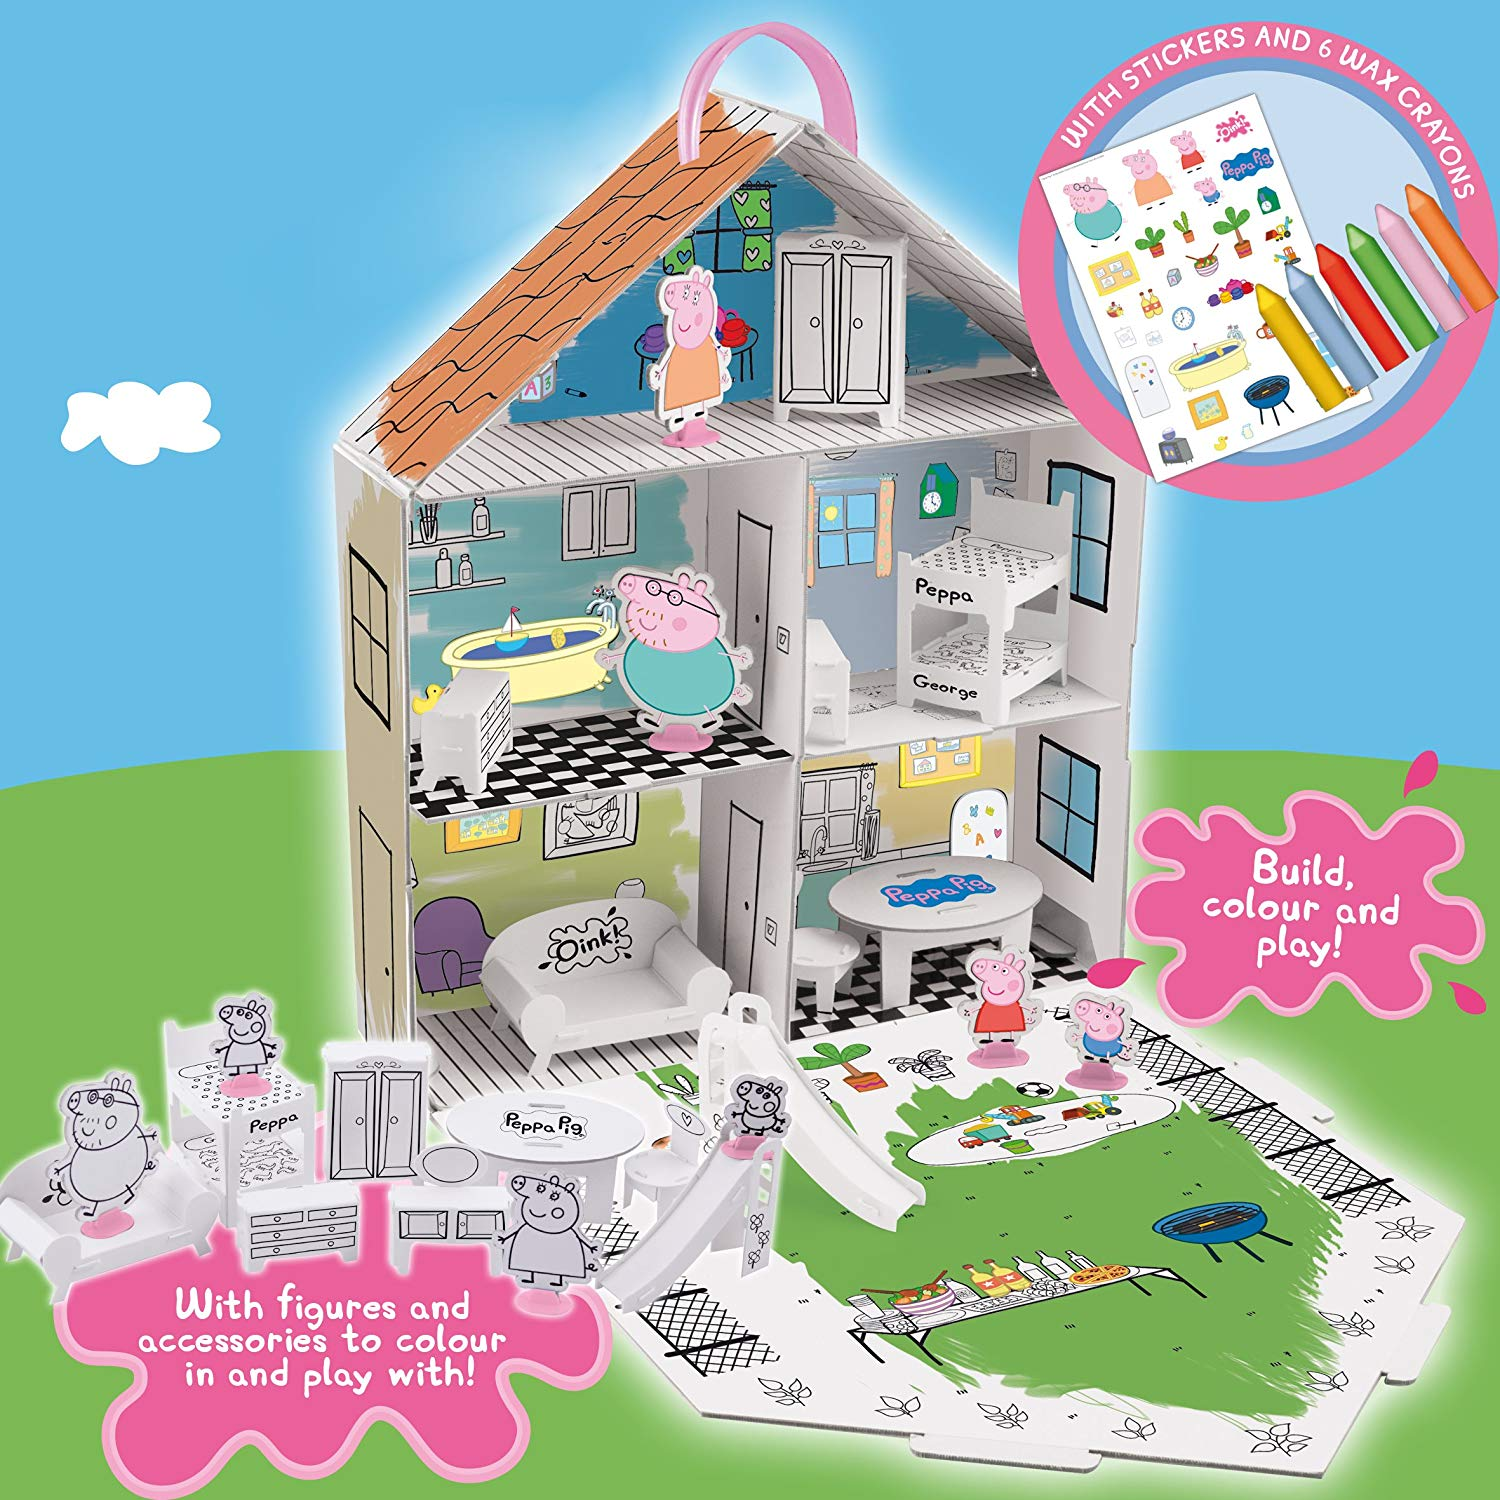 Peppa Pig Decorate Peppa's House Playset